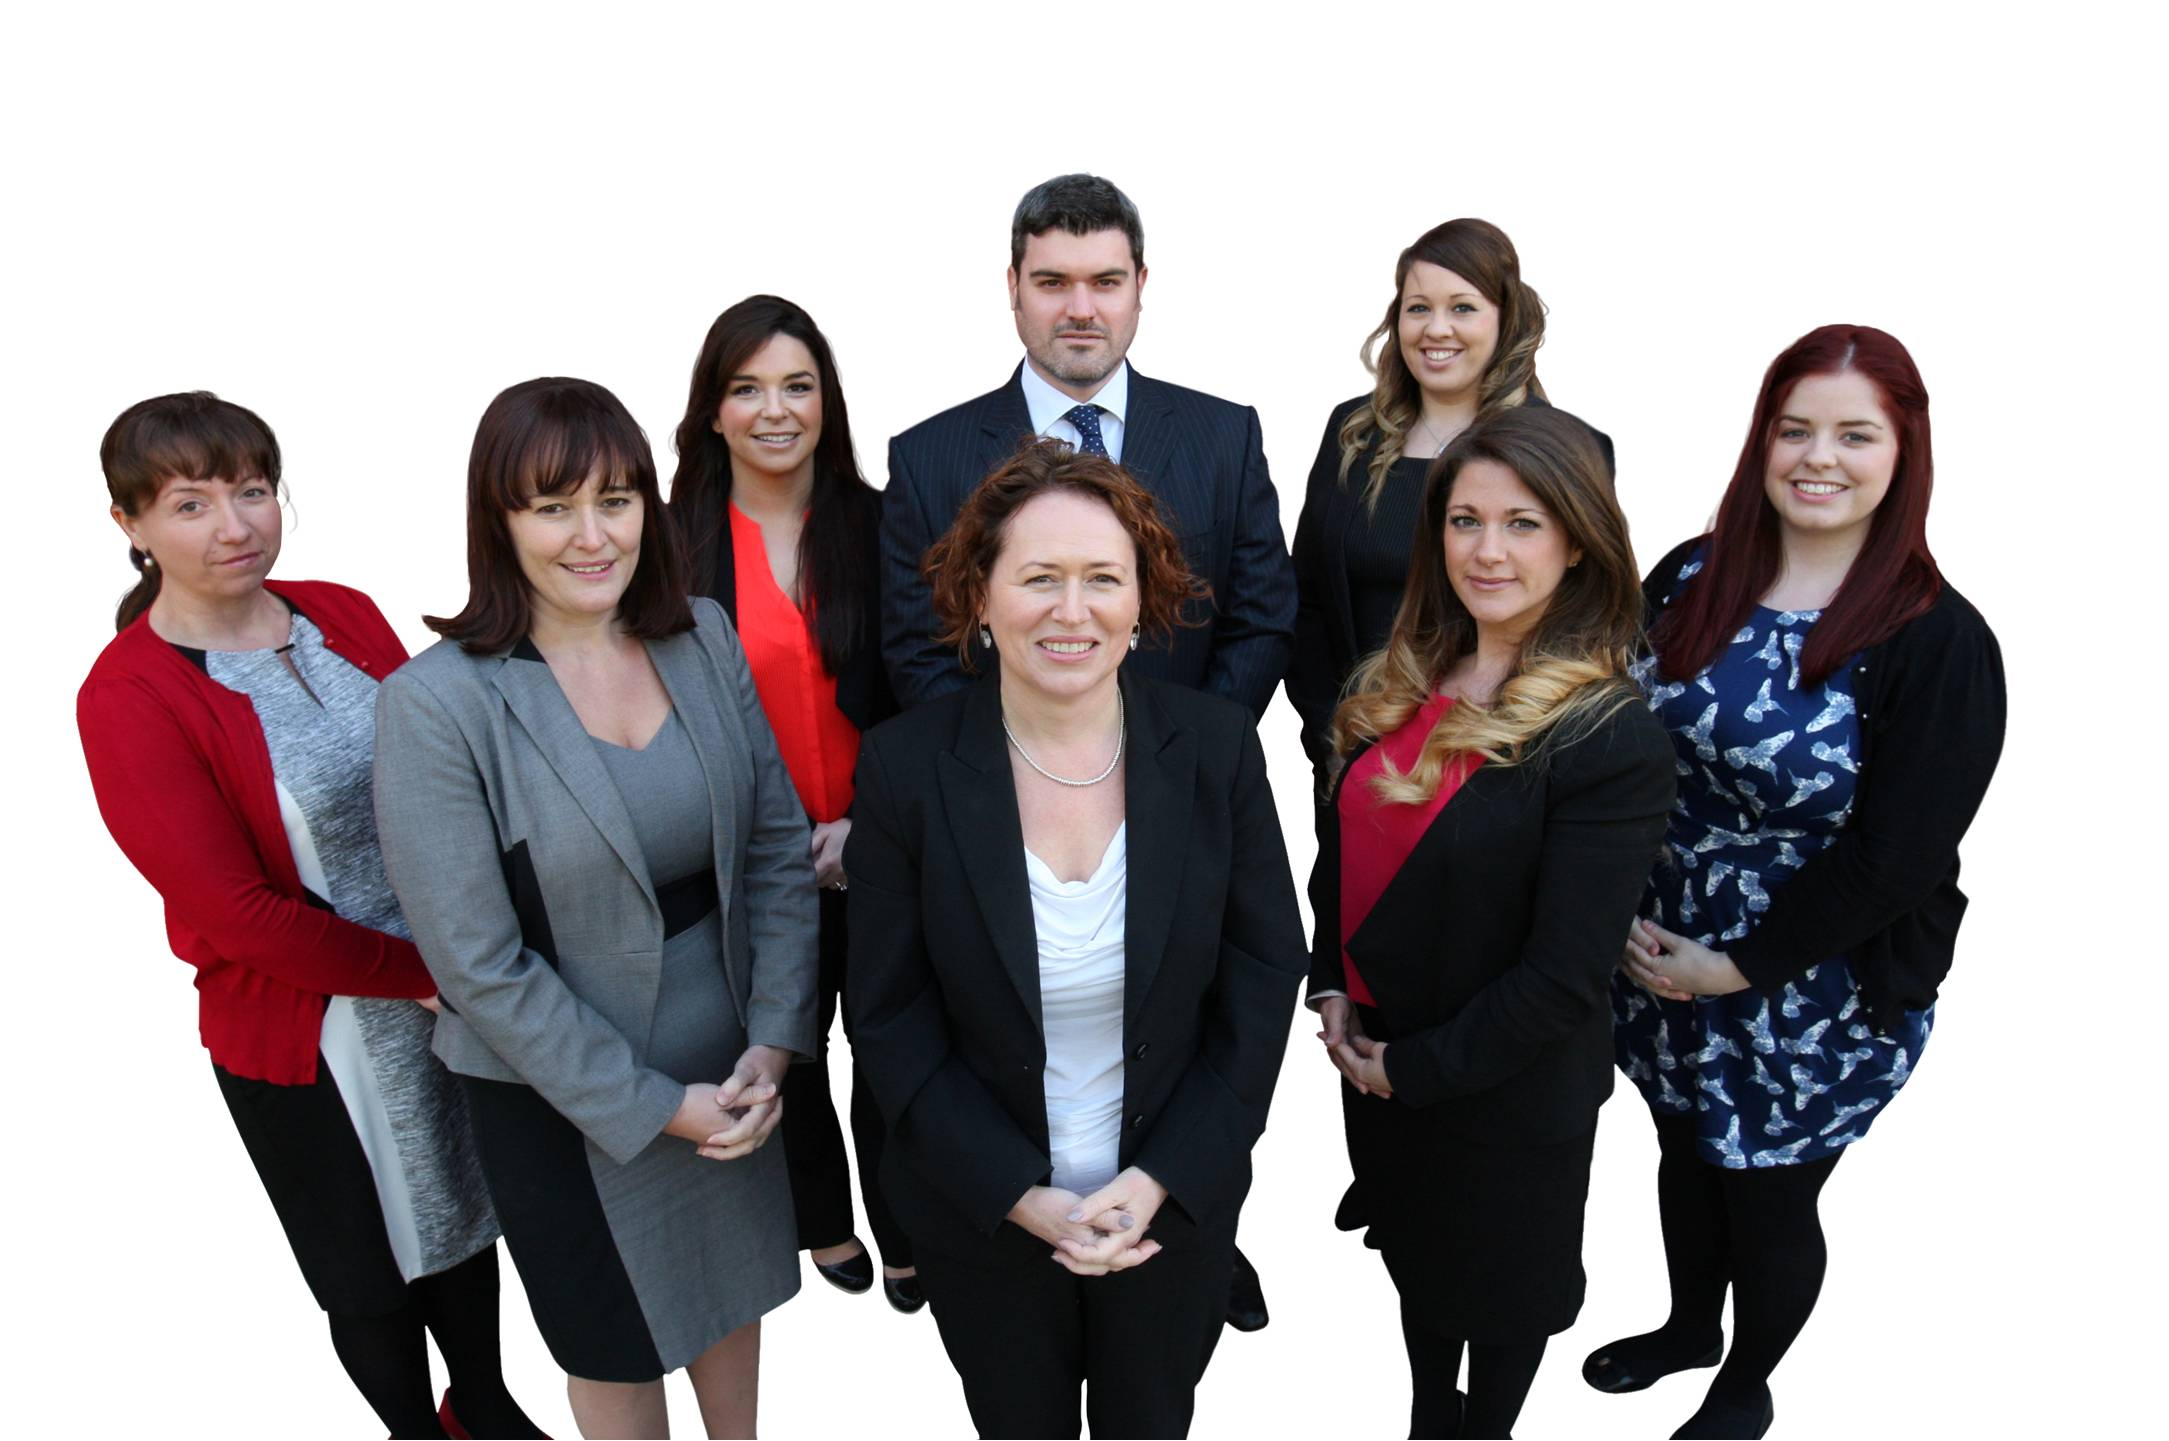 Our Stroke expert team. We deal with medical negligence claims arising from Stroke.